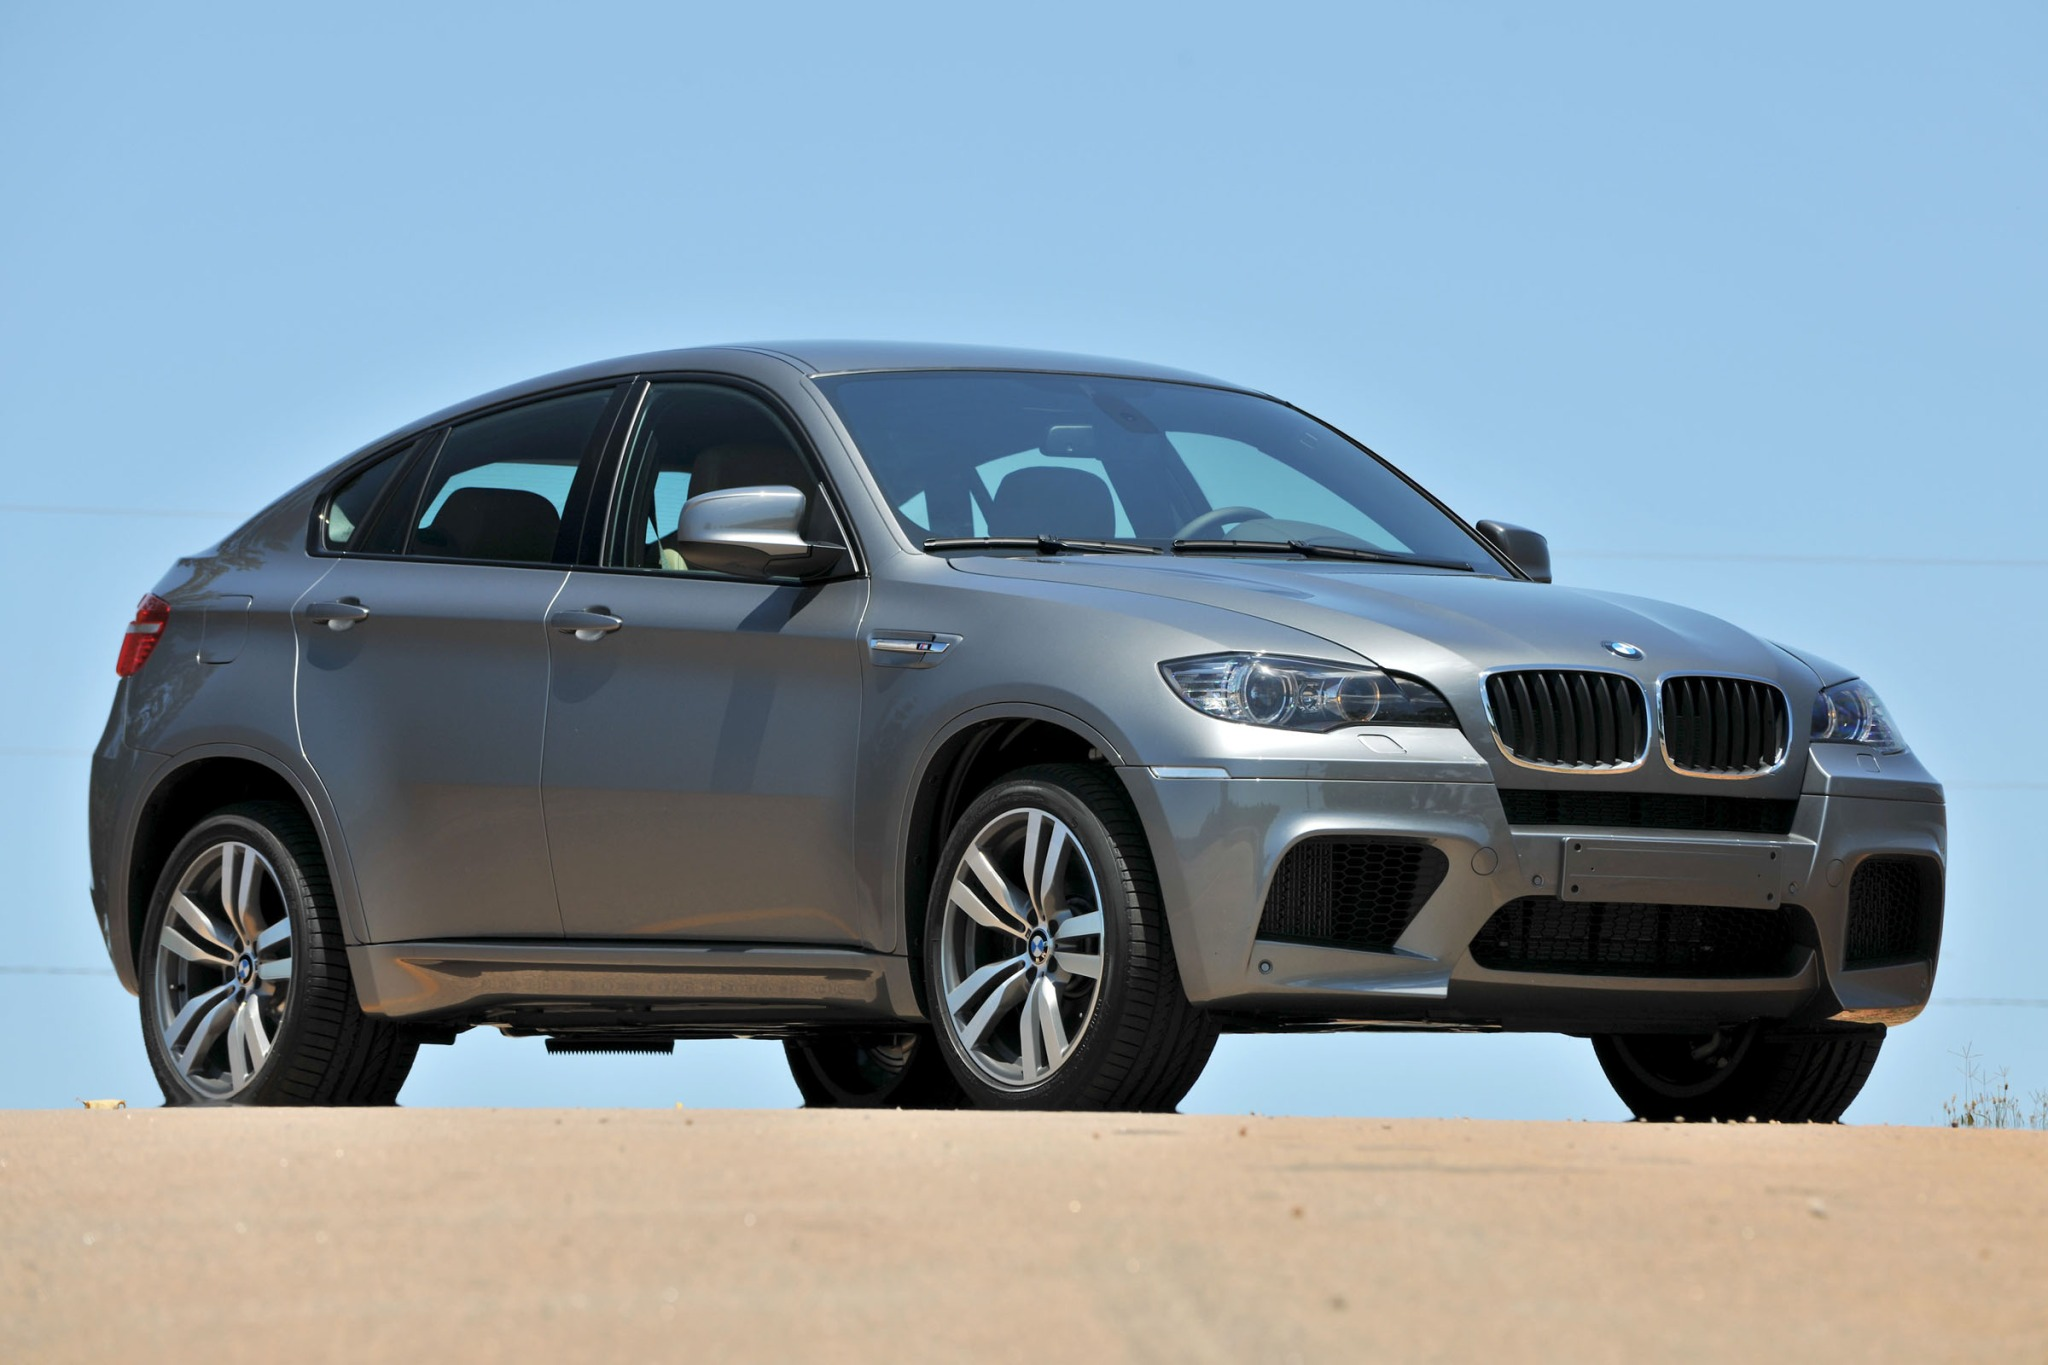 2012 BMW X6 M Gauge Clust interior #1